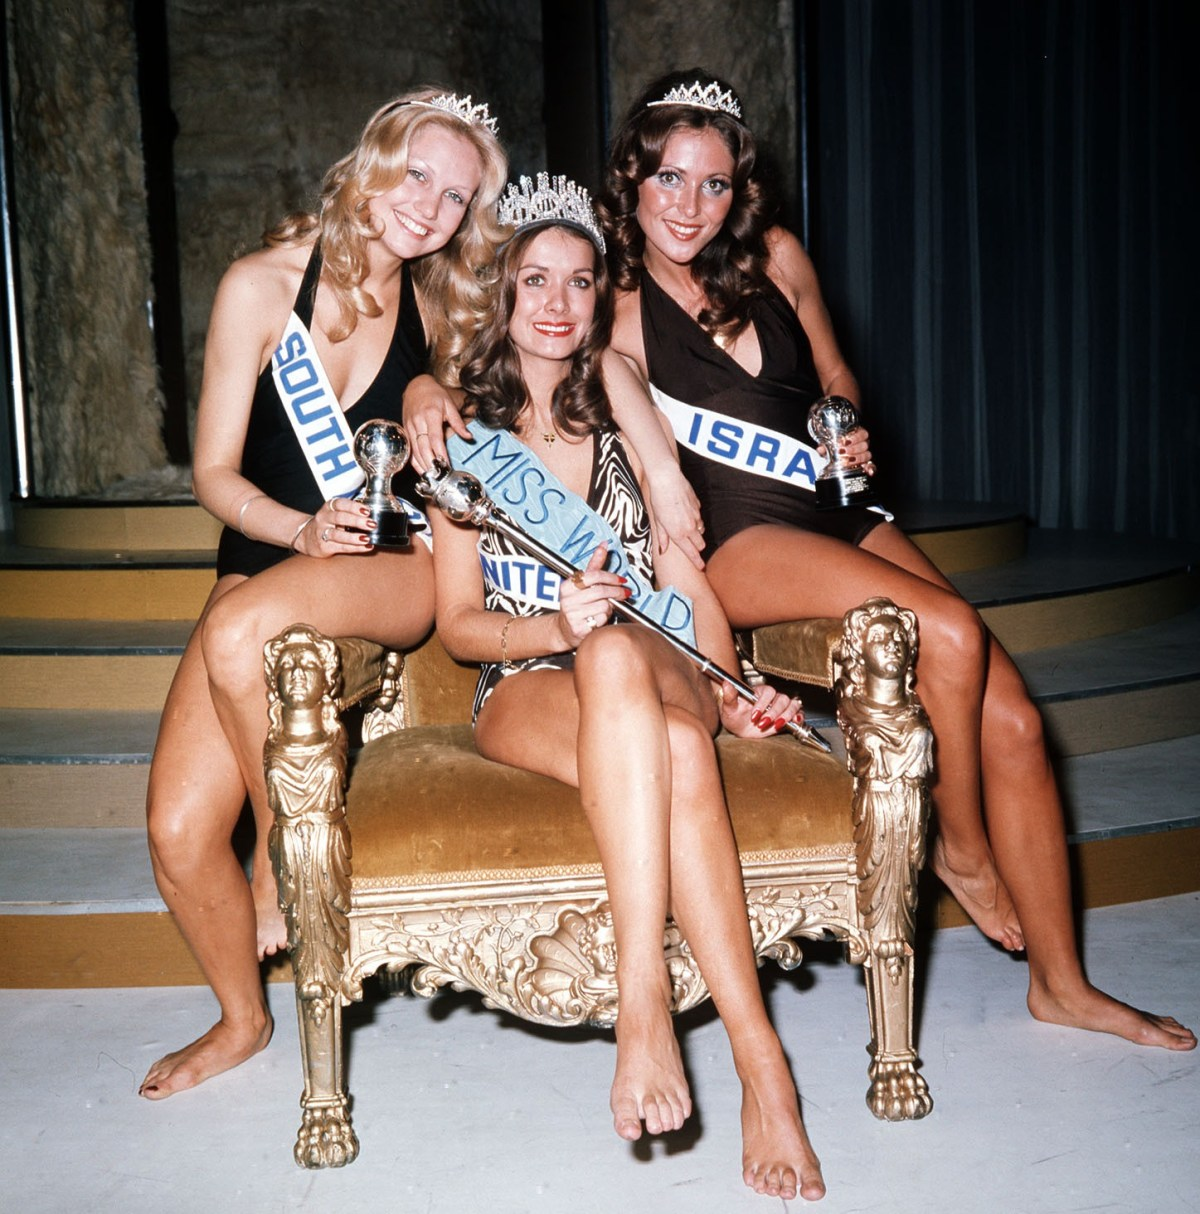 Helen, pictured after being crowned Miss World 1974, with runners-up Miss South Africa Anneline Kriel (left) and Miss Israel Lea Klein